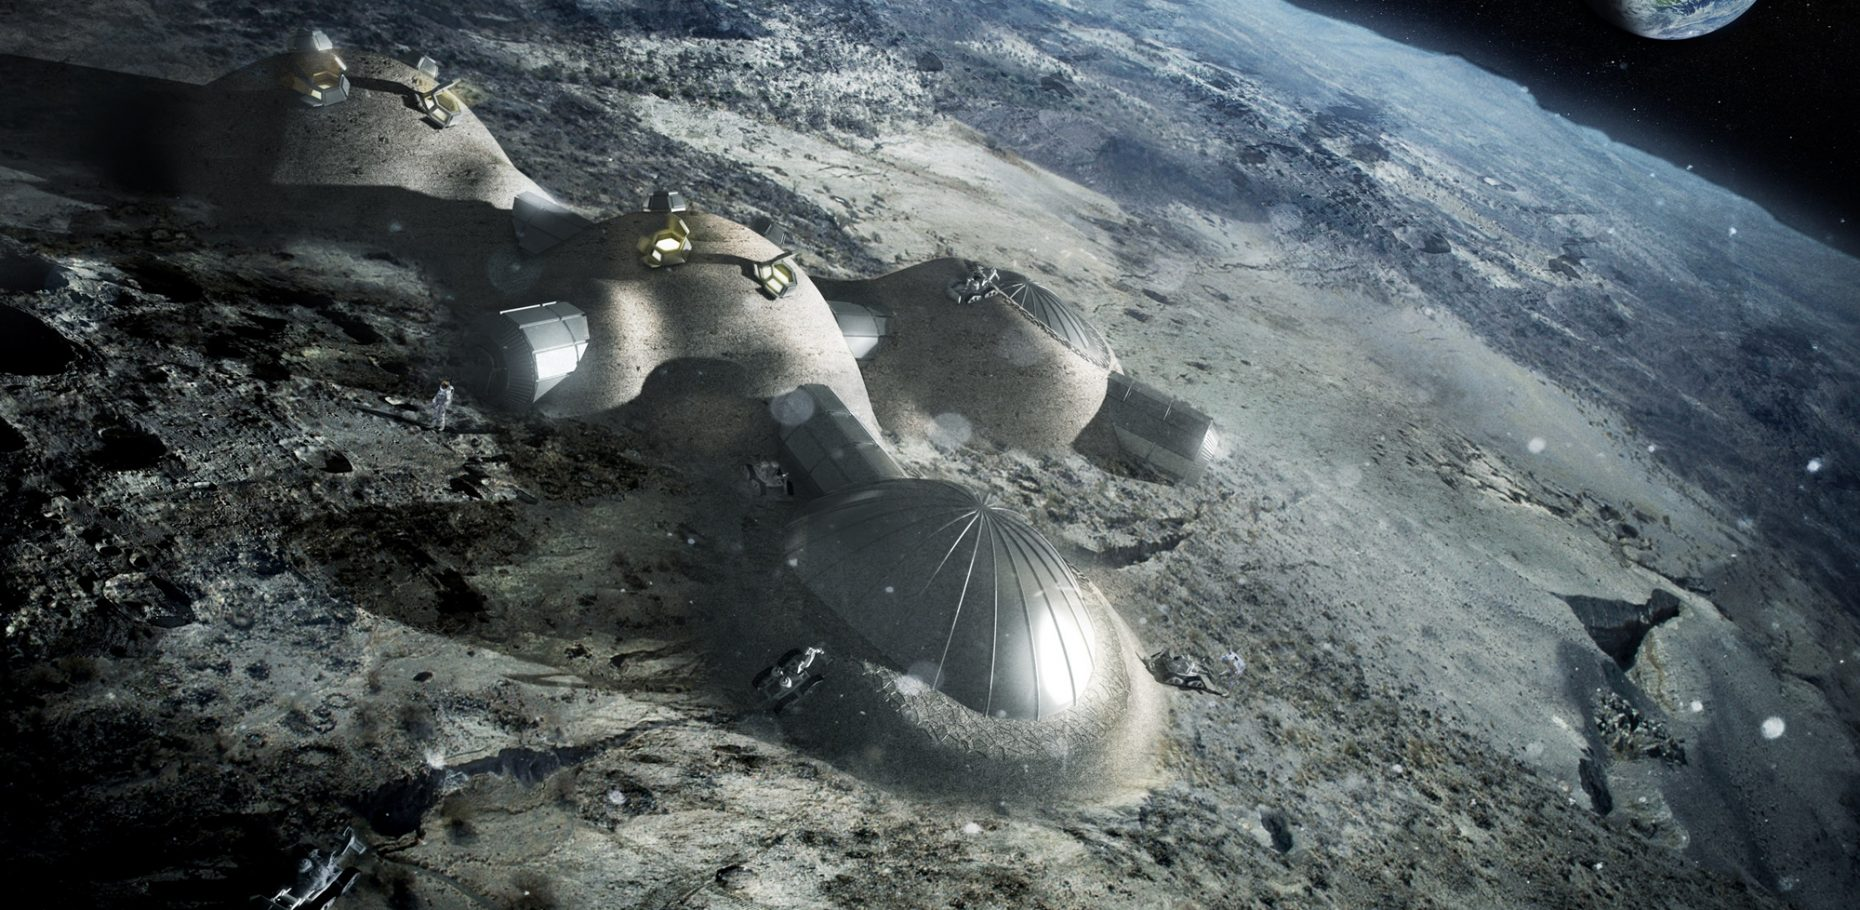 Architecture on the moon? Might be possible some day thanks to innovative in-house architectural research – in this case by Foster + Partners.